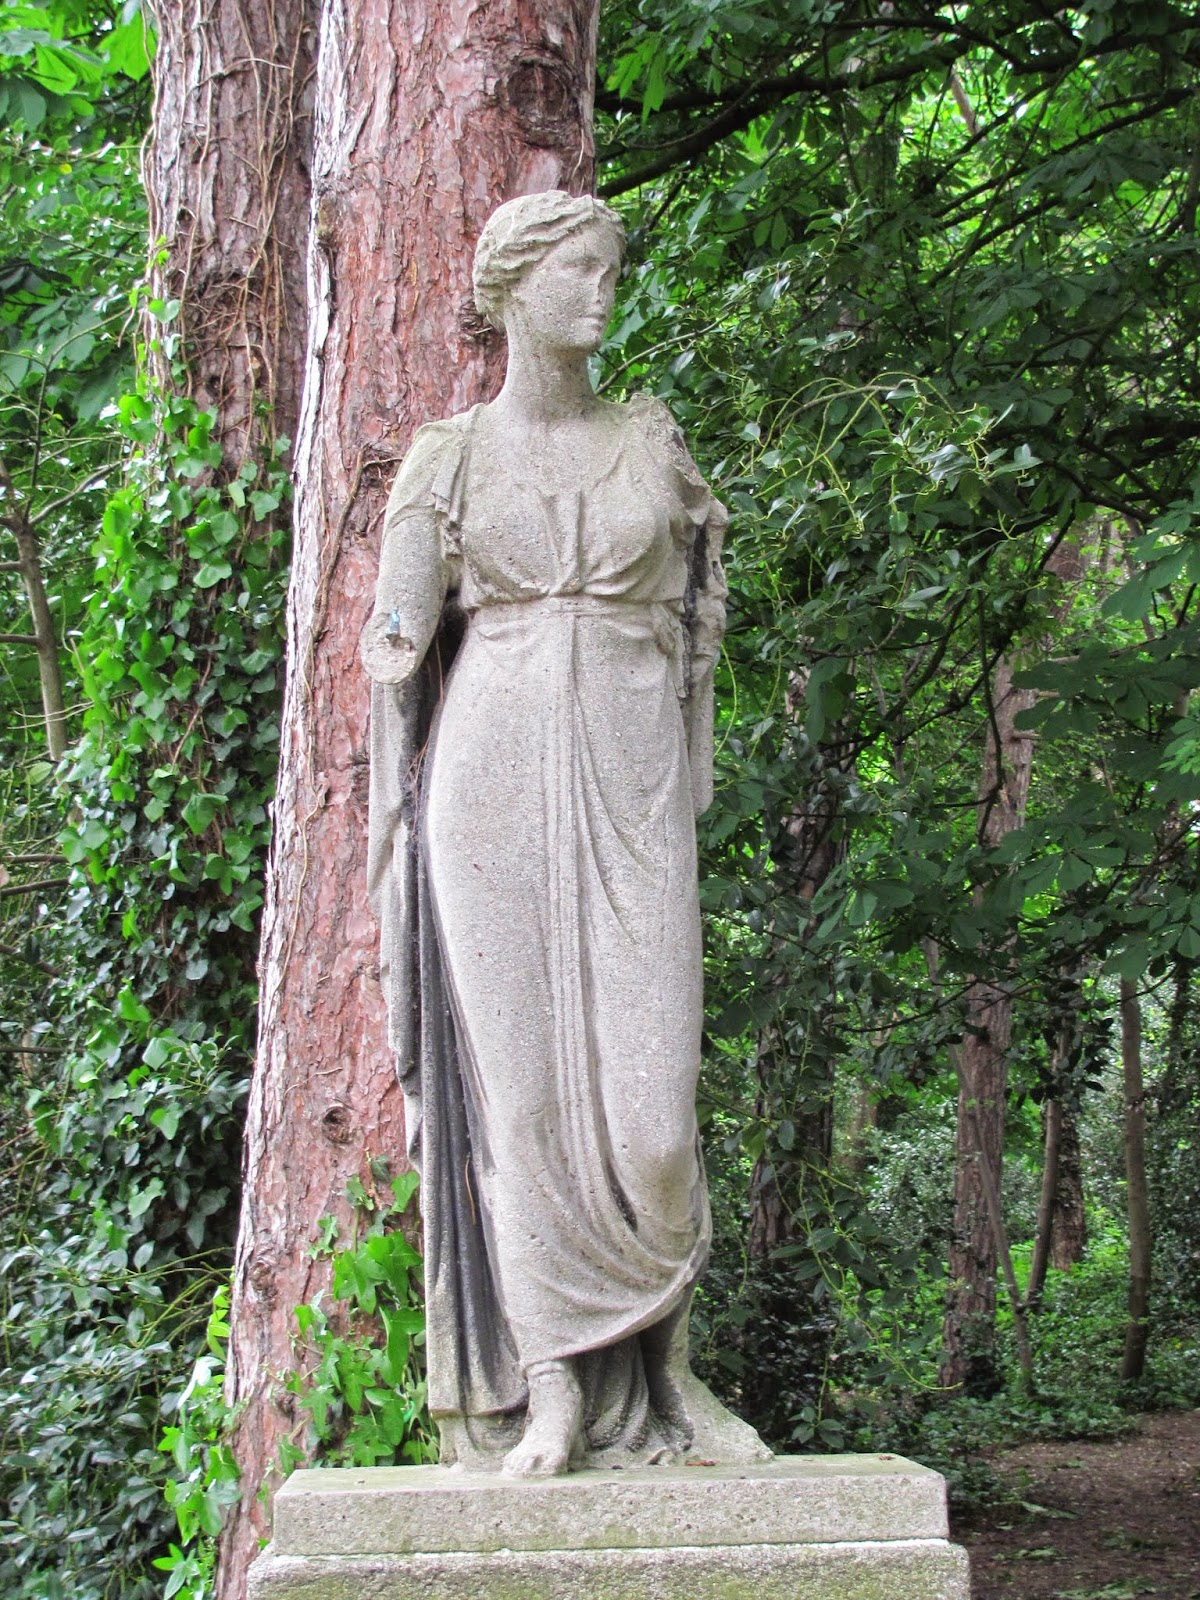 Broken statue of a Greek goddess at Iveagh Gardens, Dublin